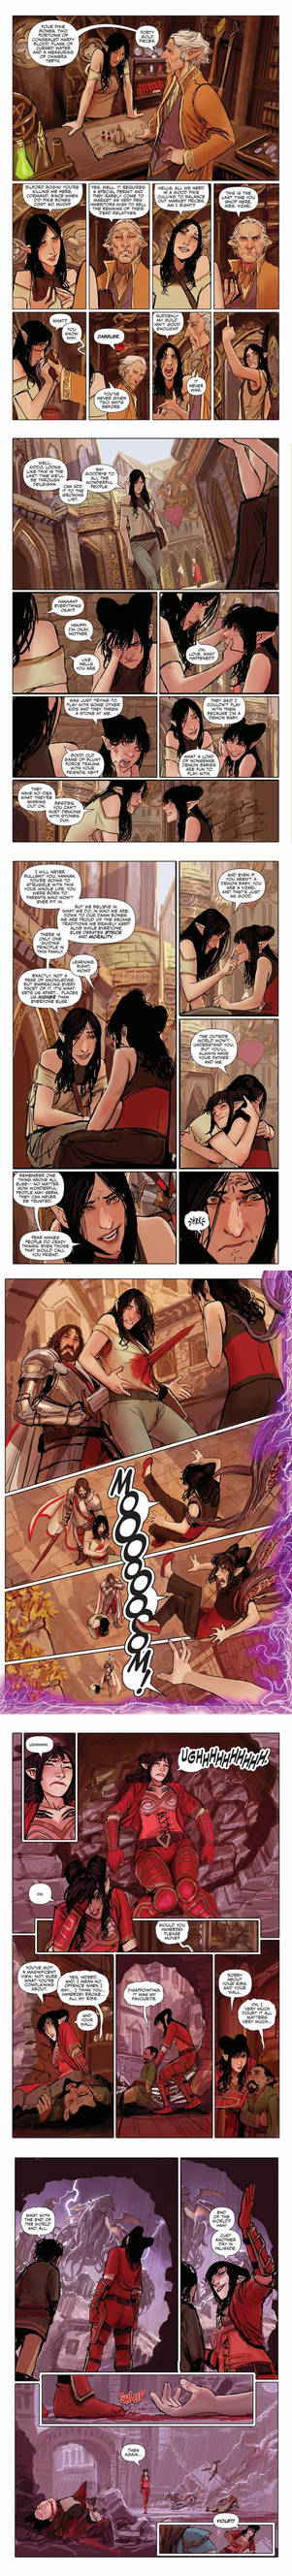 rat queens issue 9 first look